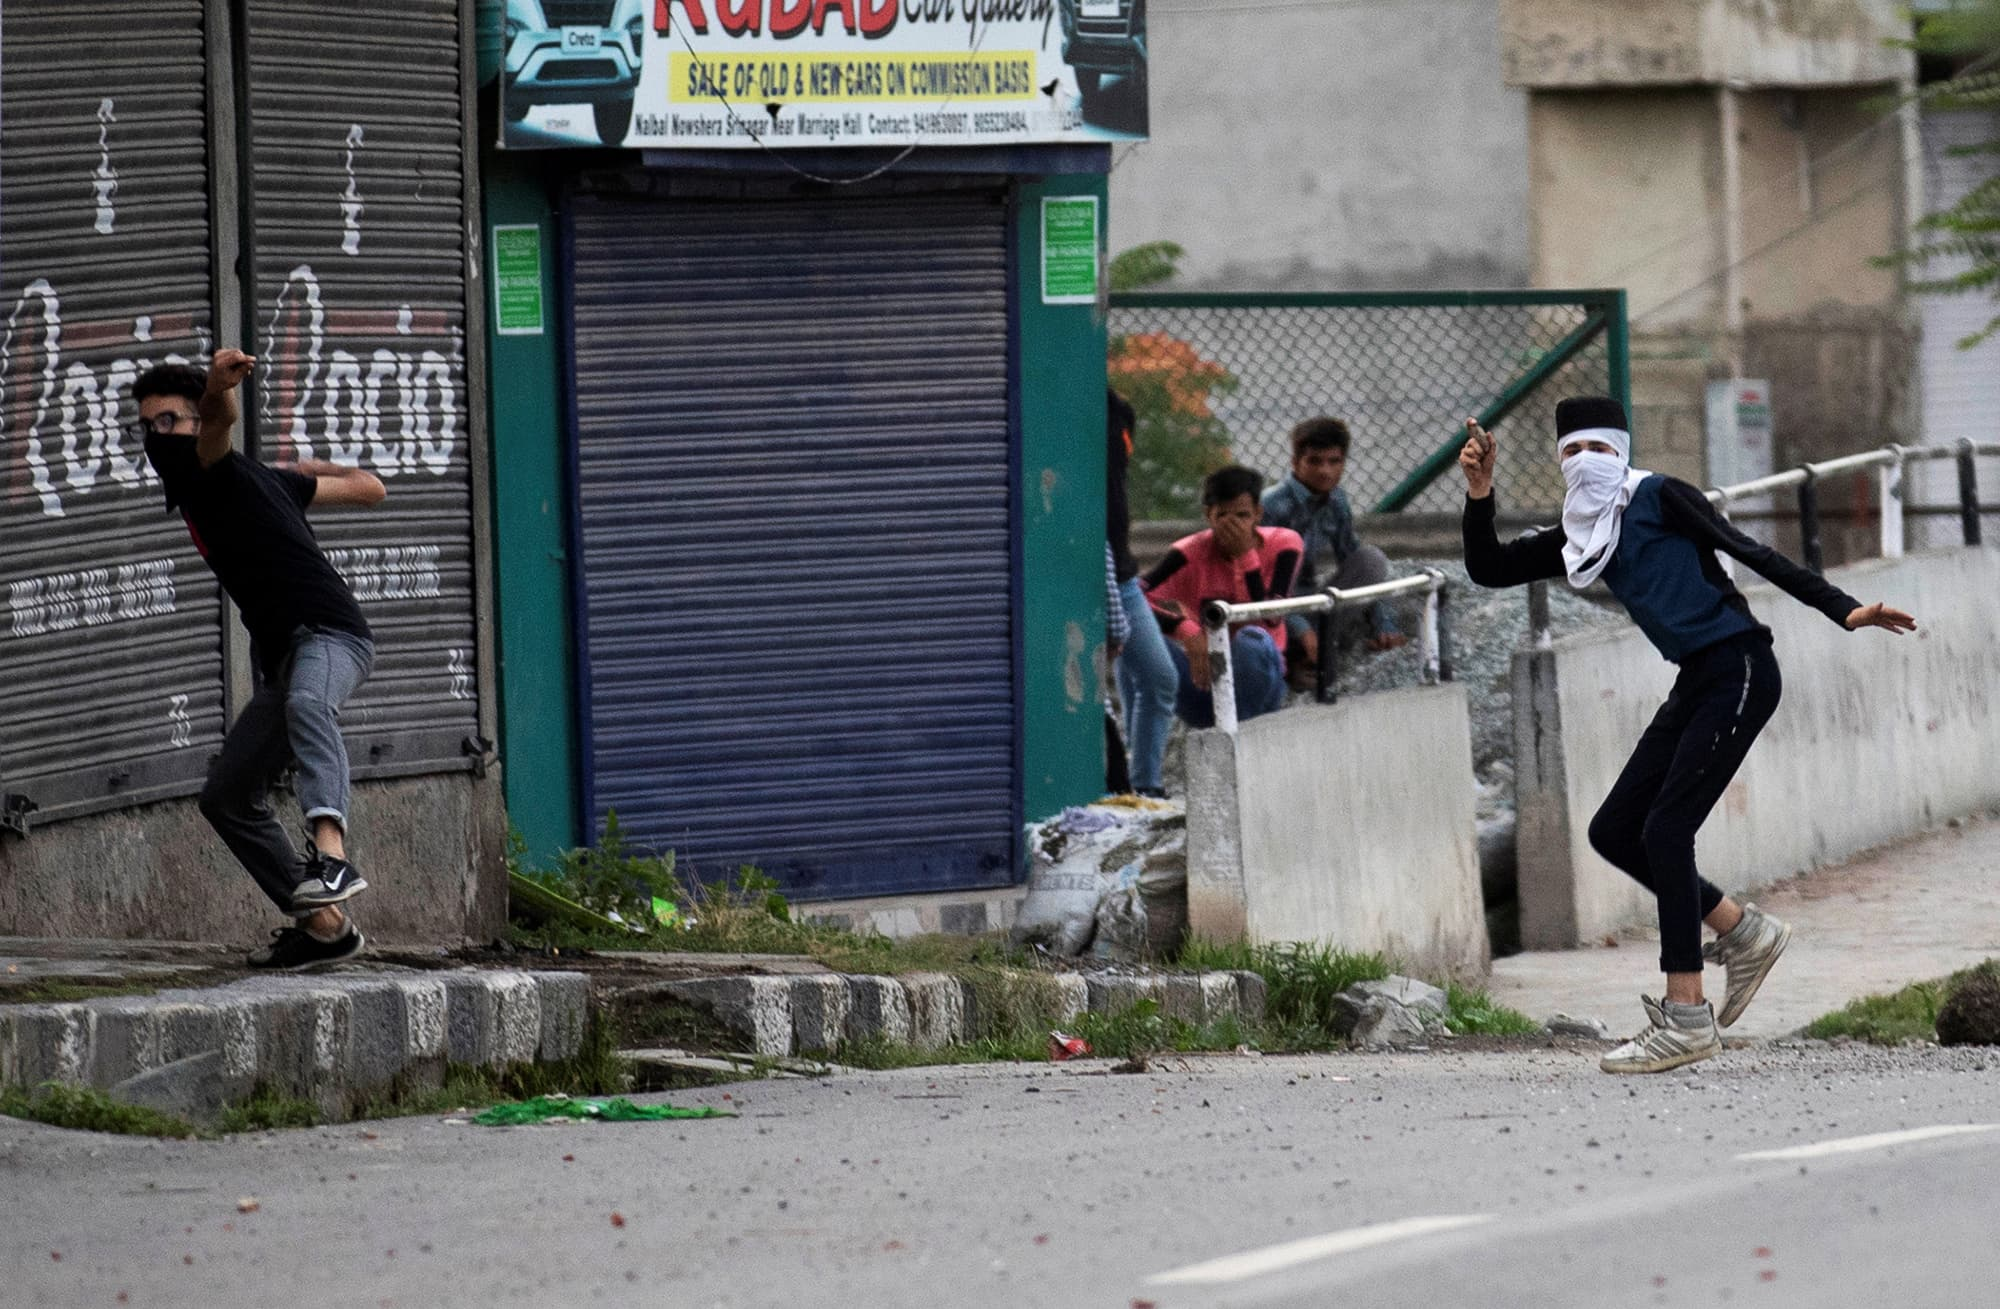 Kashmiri youth throw stones, a common mode of resistance in the occupied territory, at Indian security forces during curfew in Srinagar. ─ Reuters